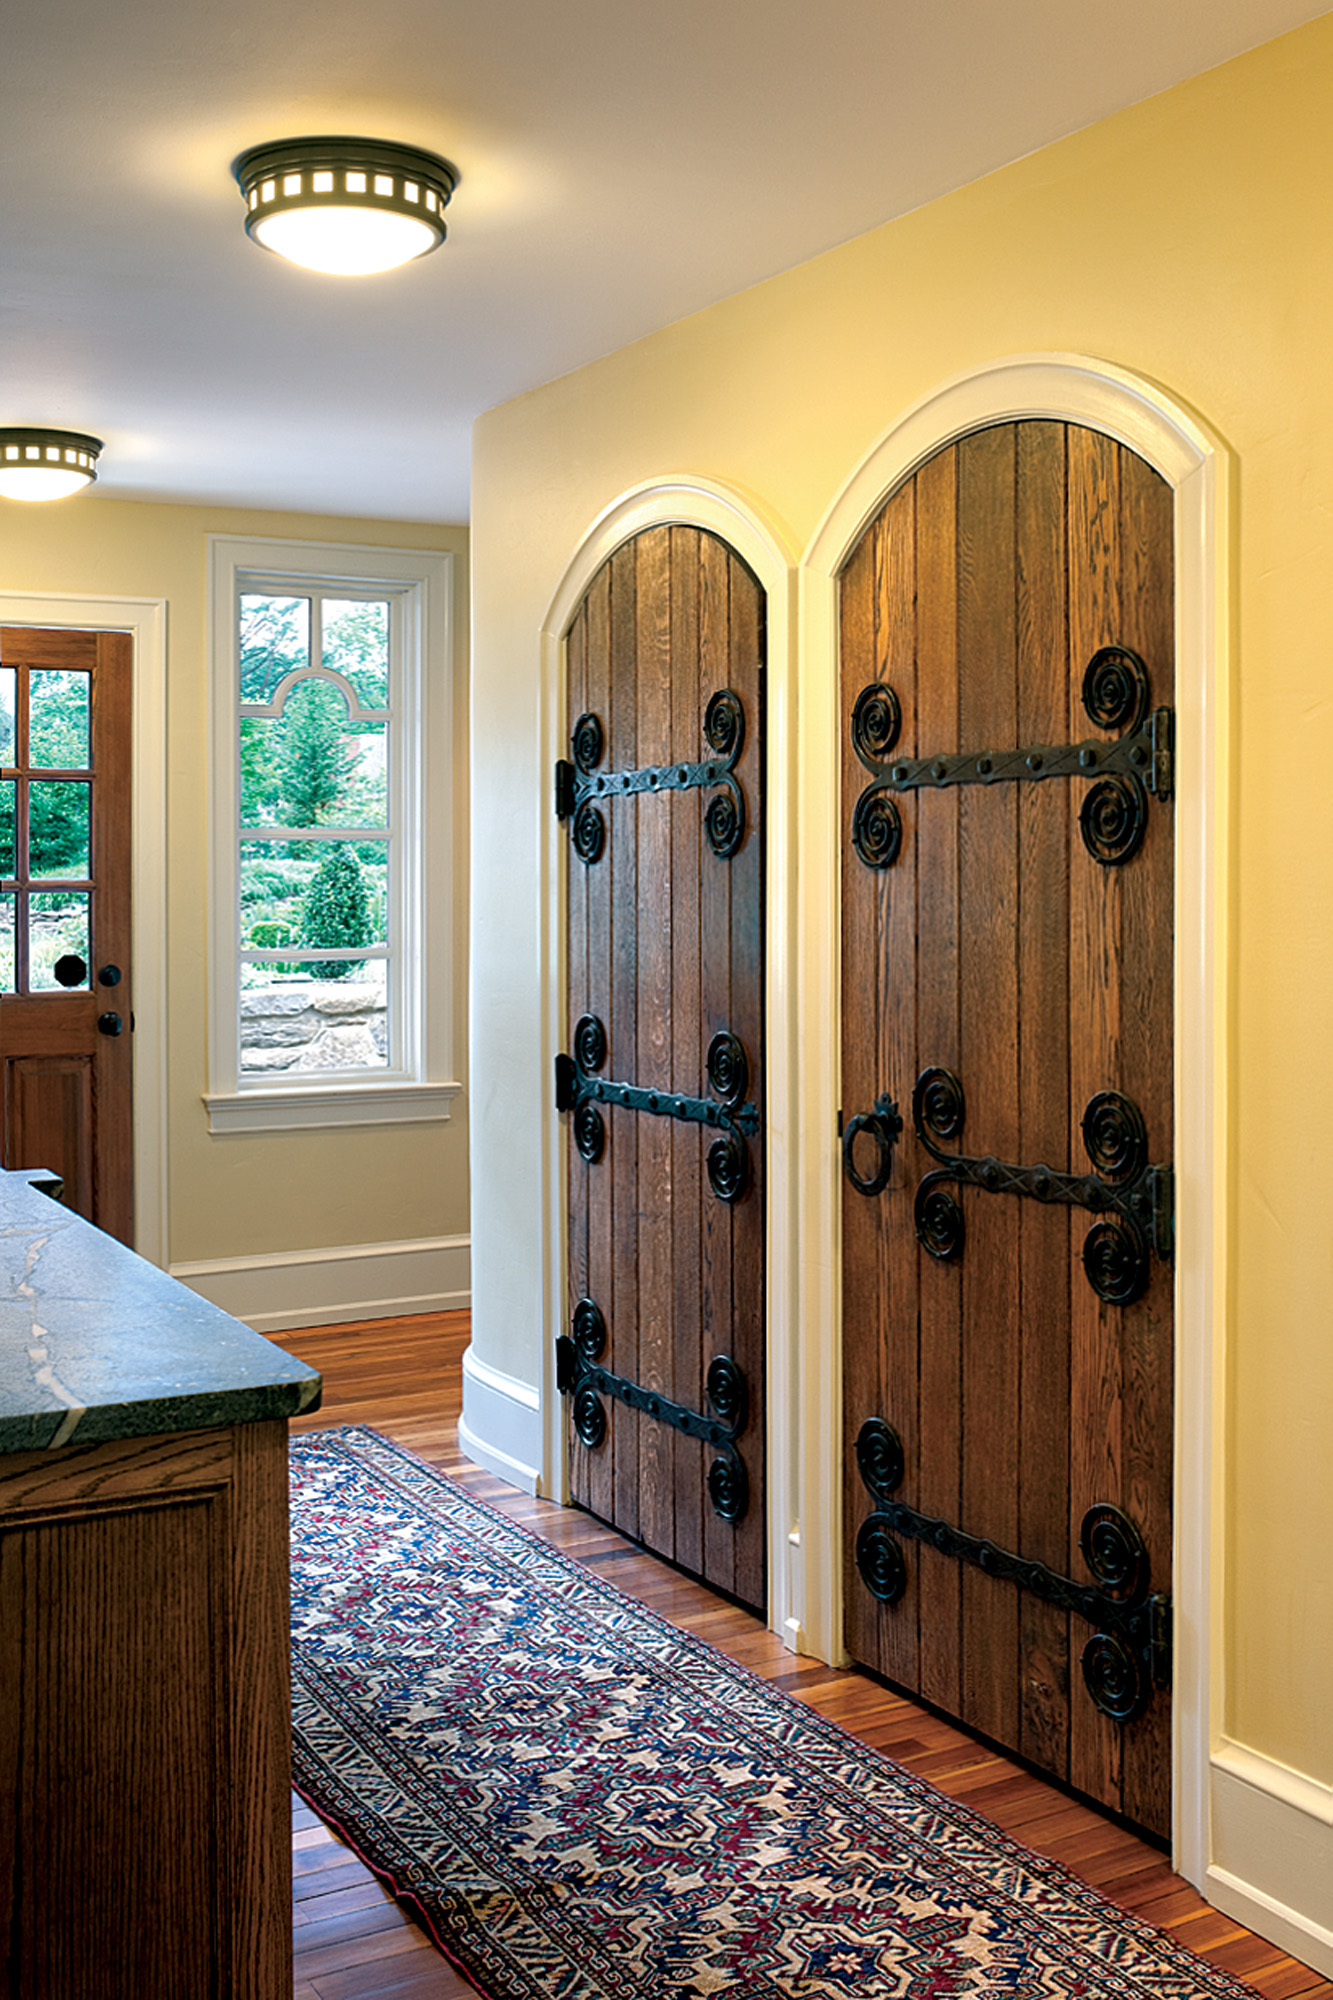 twin radius-topped doors